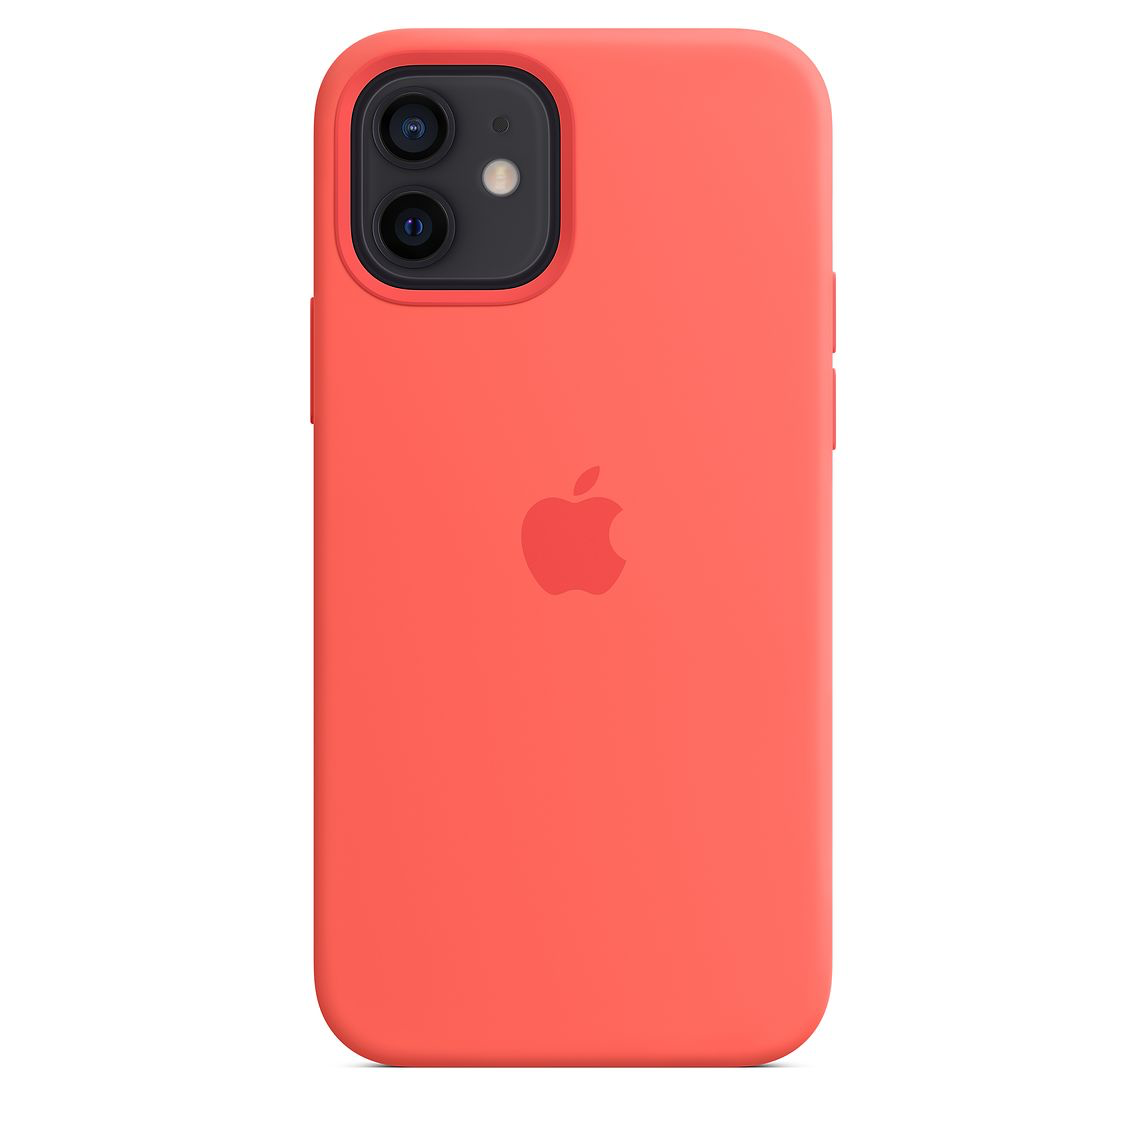 Apple iPhone 12/12Pro Silicone Case with MagSafe Pink Citrus